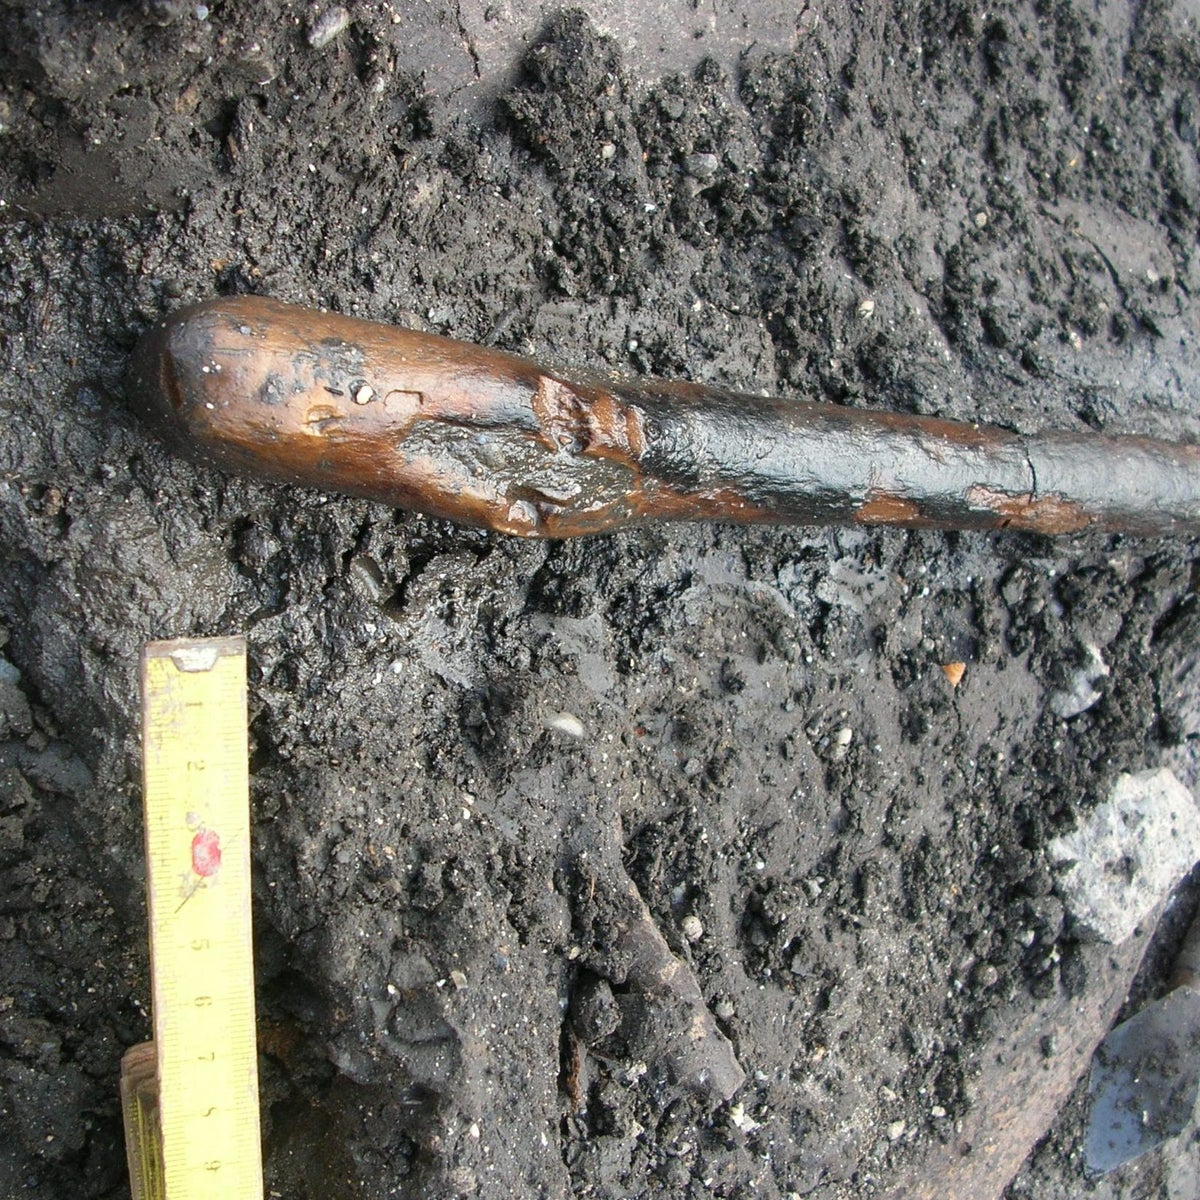 Burned film on the handle end of a 170,000-year old Neanderthal digging stick, found among straight-tusked elephant bones at Poggetti Vecchi, Tuscany